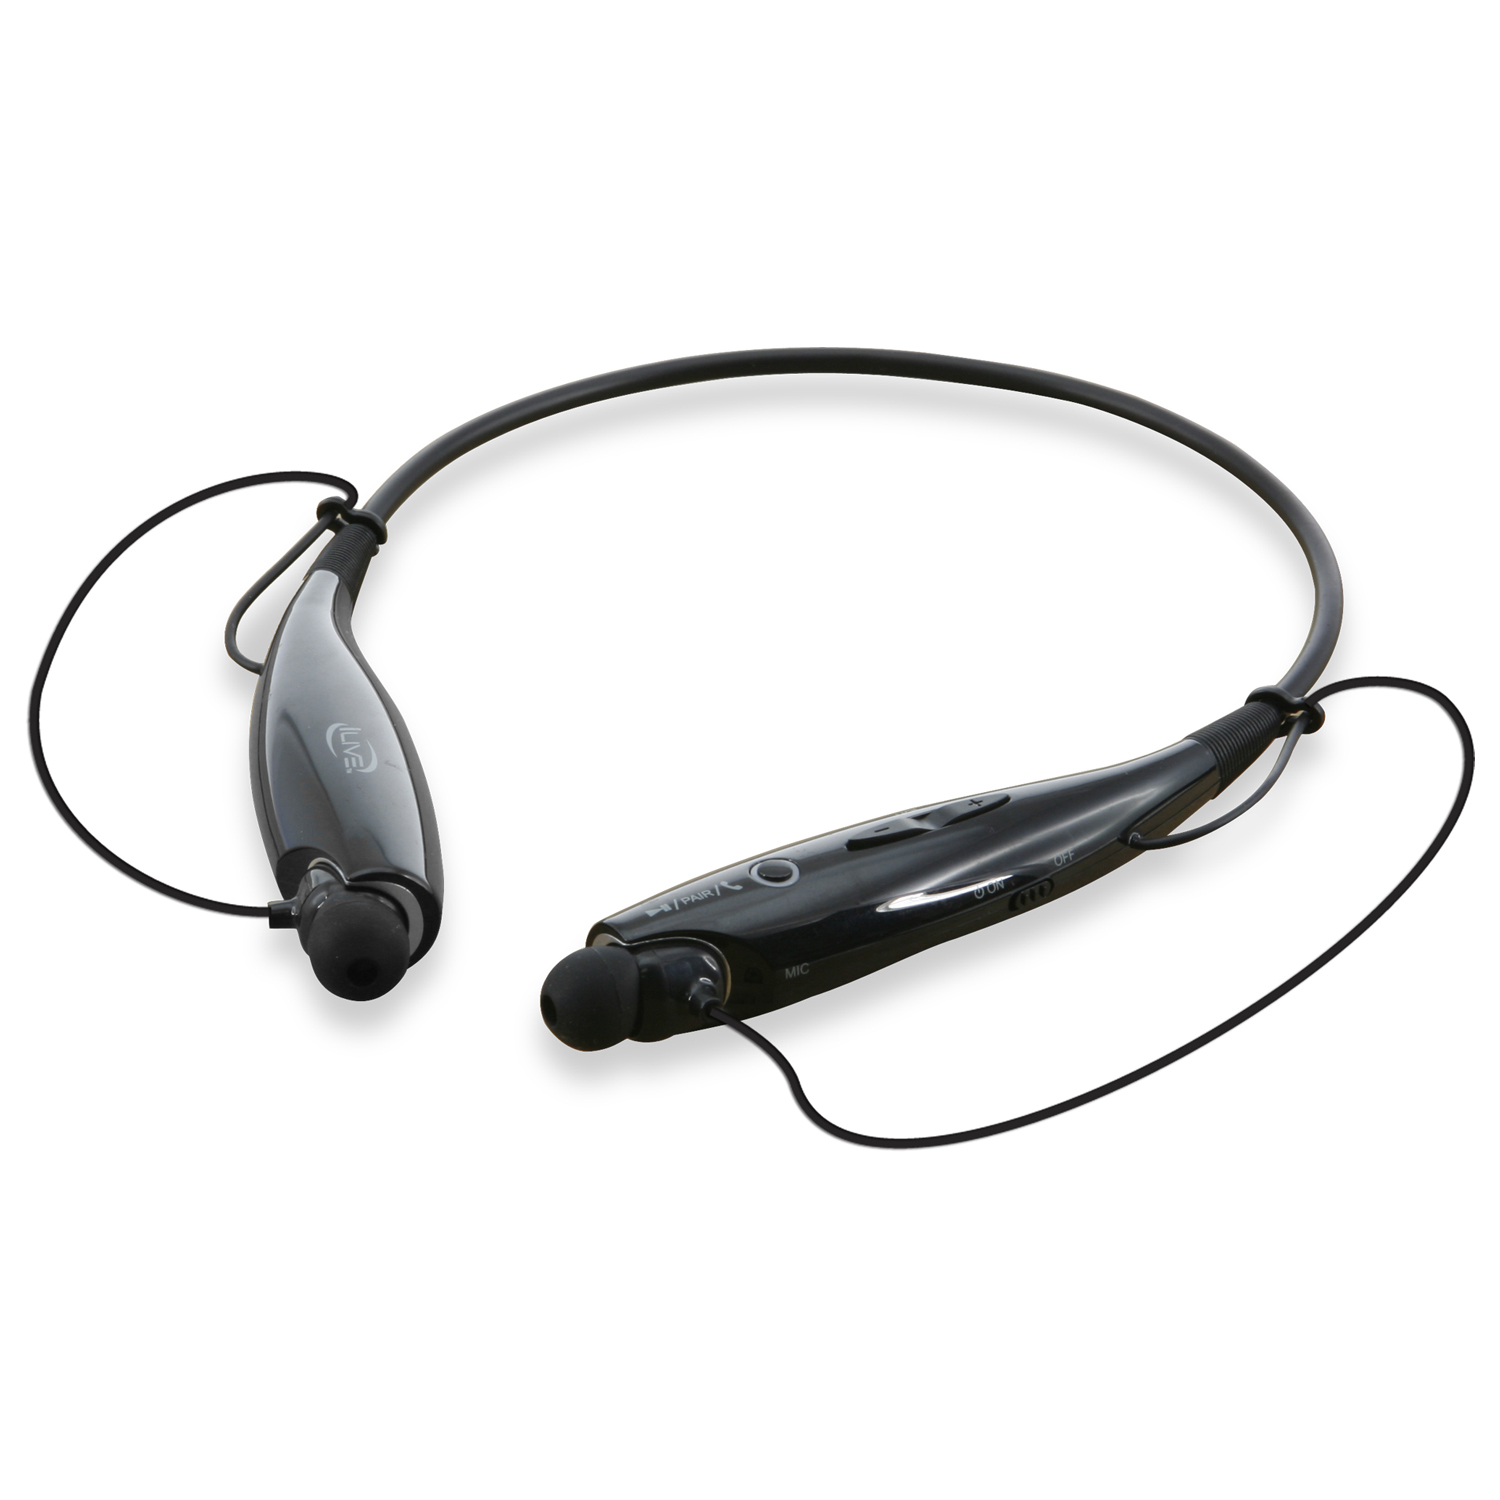 iLive IAEB25B Bluetooth Stereo Headset with Neckband Design, Black